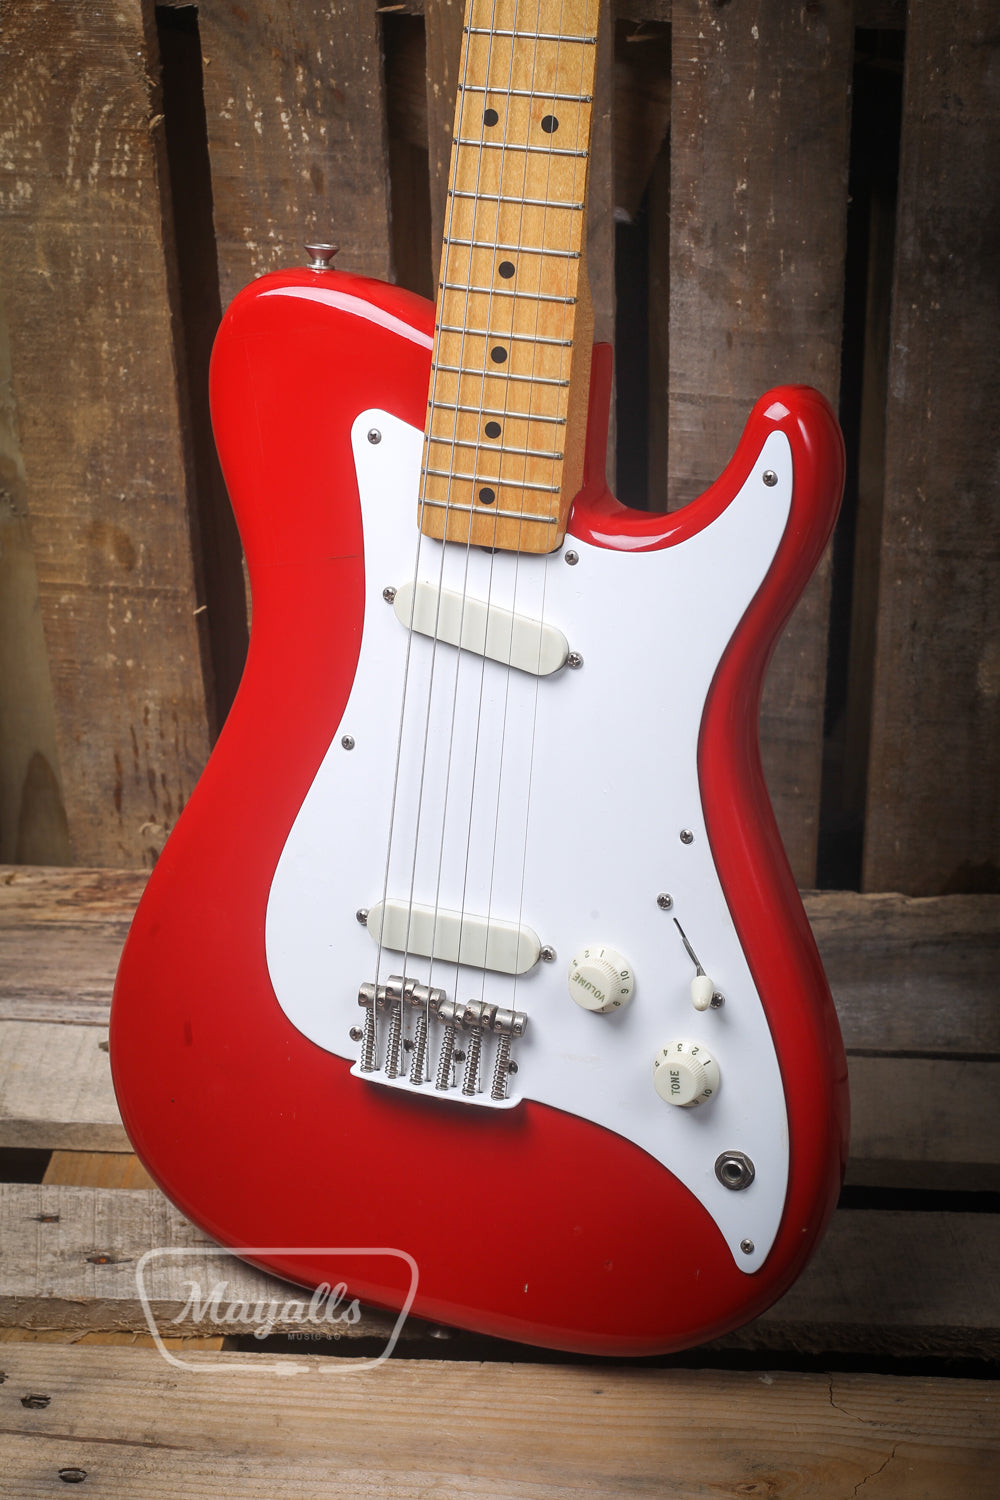 1981 Fender Bullet USA Red Electric Guitar - Pre-owned